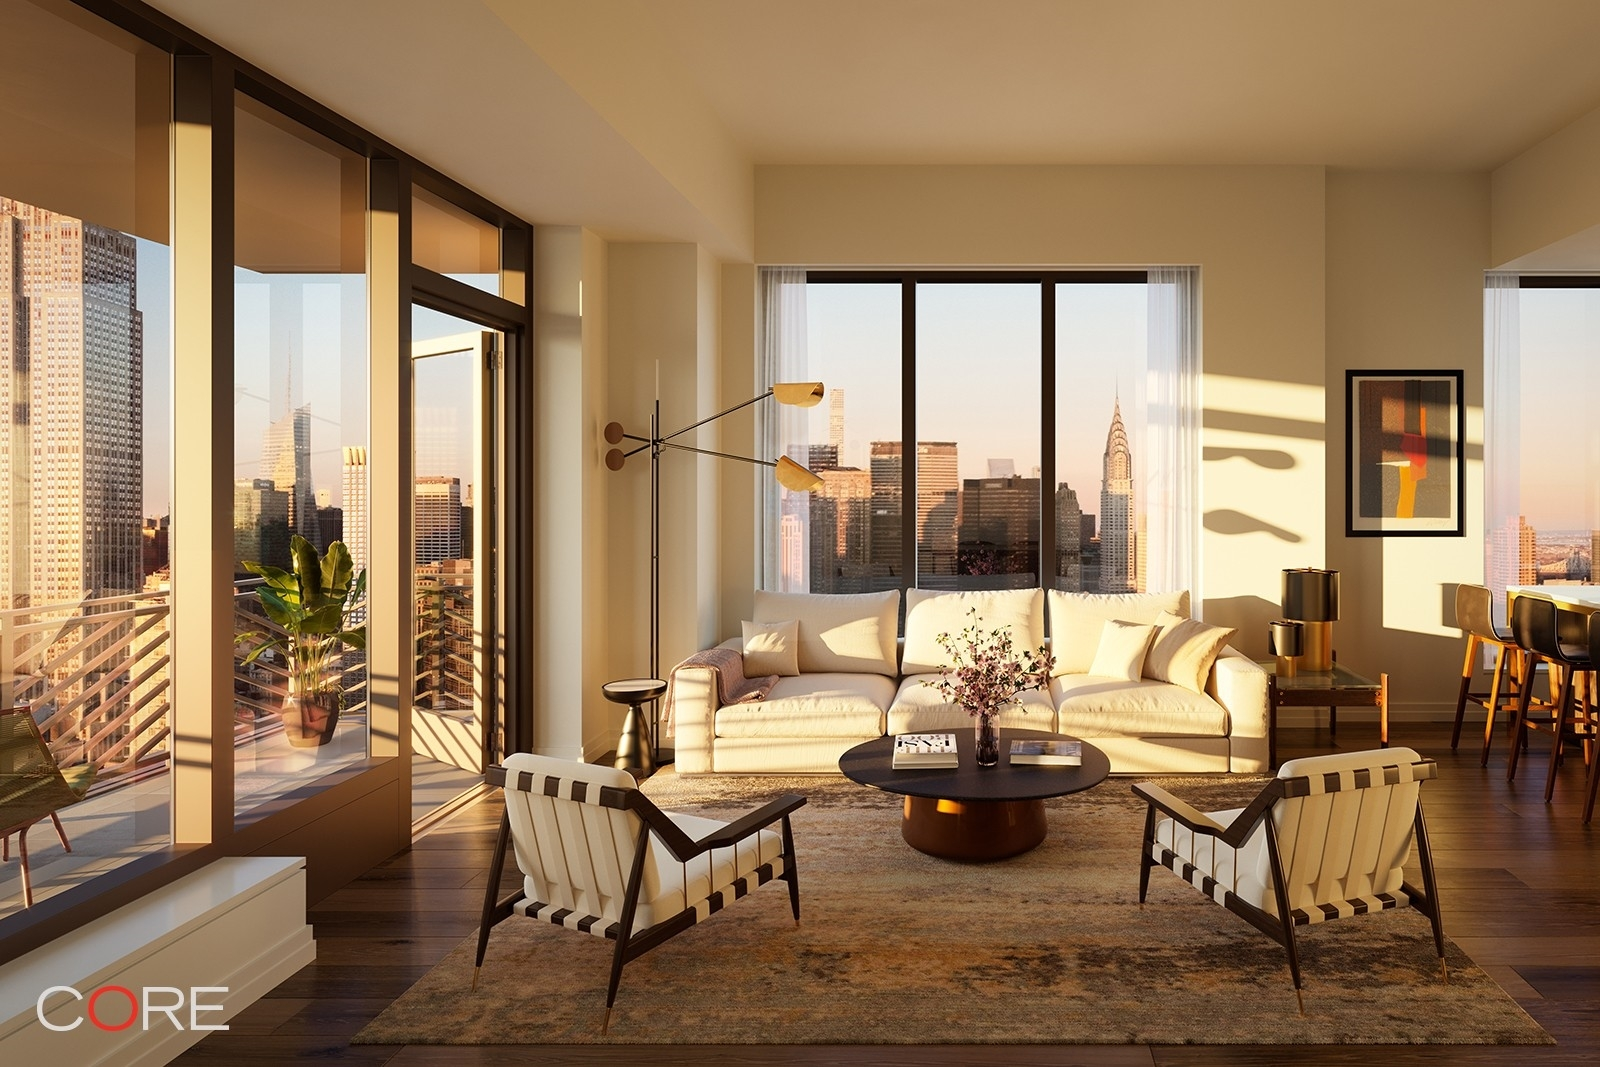 Property at 30 East 29th St, 39A NoMad, New York, NY 10016